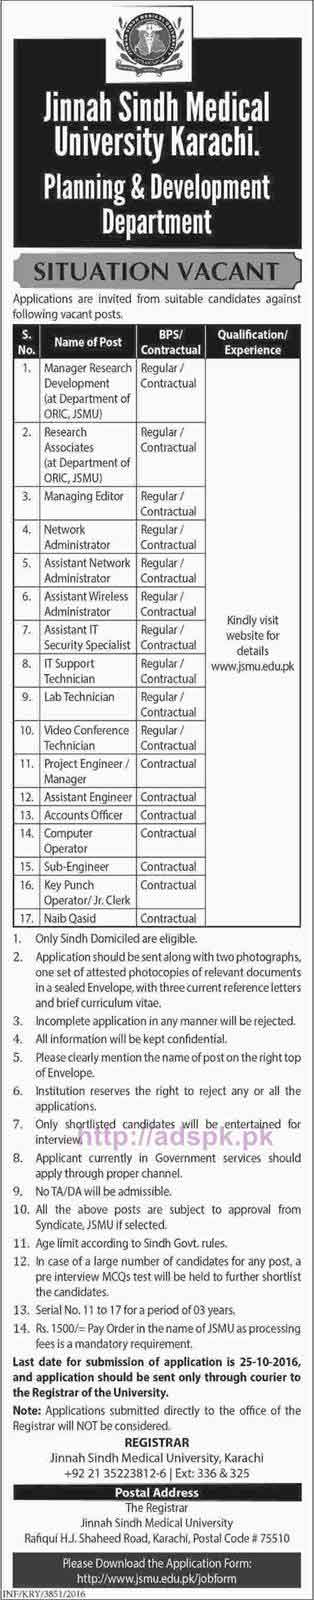 New Career Jobs Jinnah Sindh Medical University Karachi Jobs for Manager Research Network Admin Assistant I.T Computer Operator Sub Engineer Application Deadline 25-10-2016 Apply Now